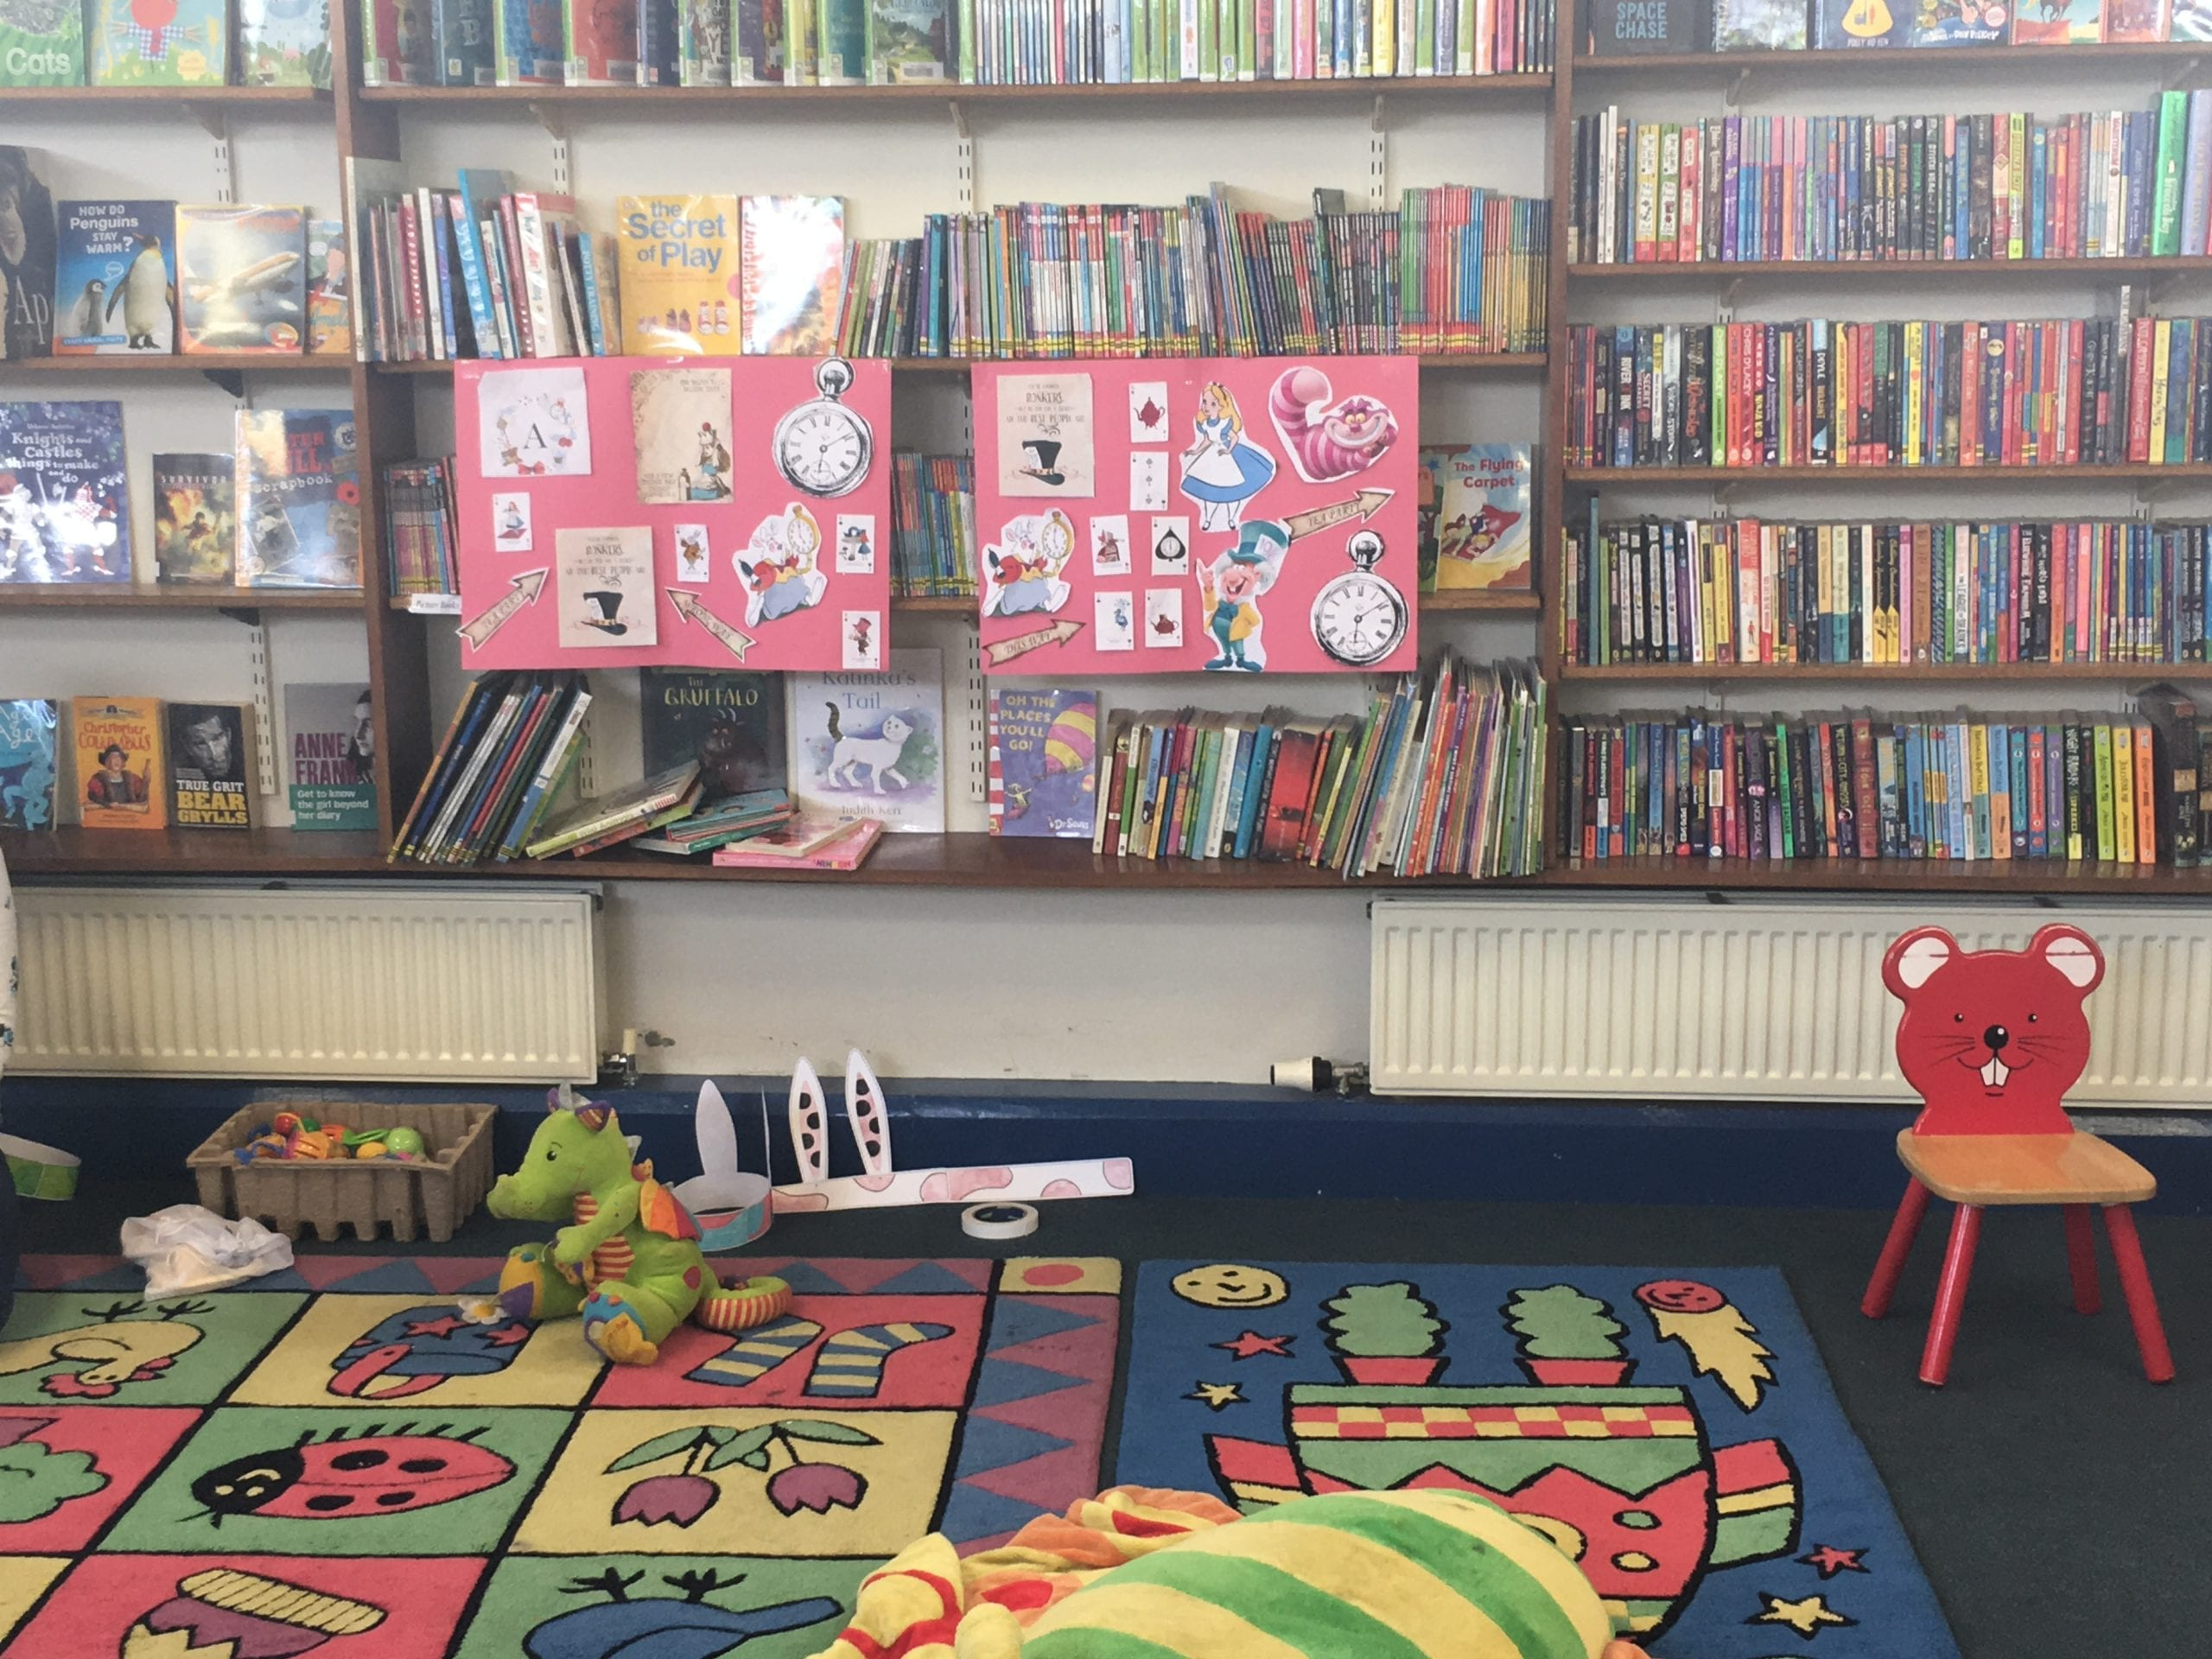 A play area in a library with an Alice in Wonderland display